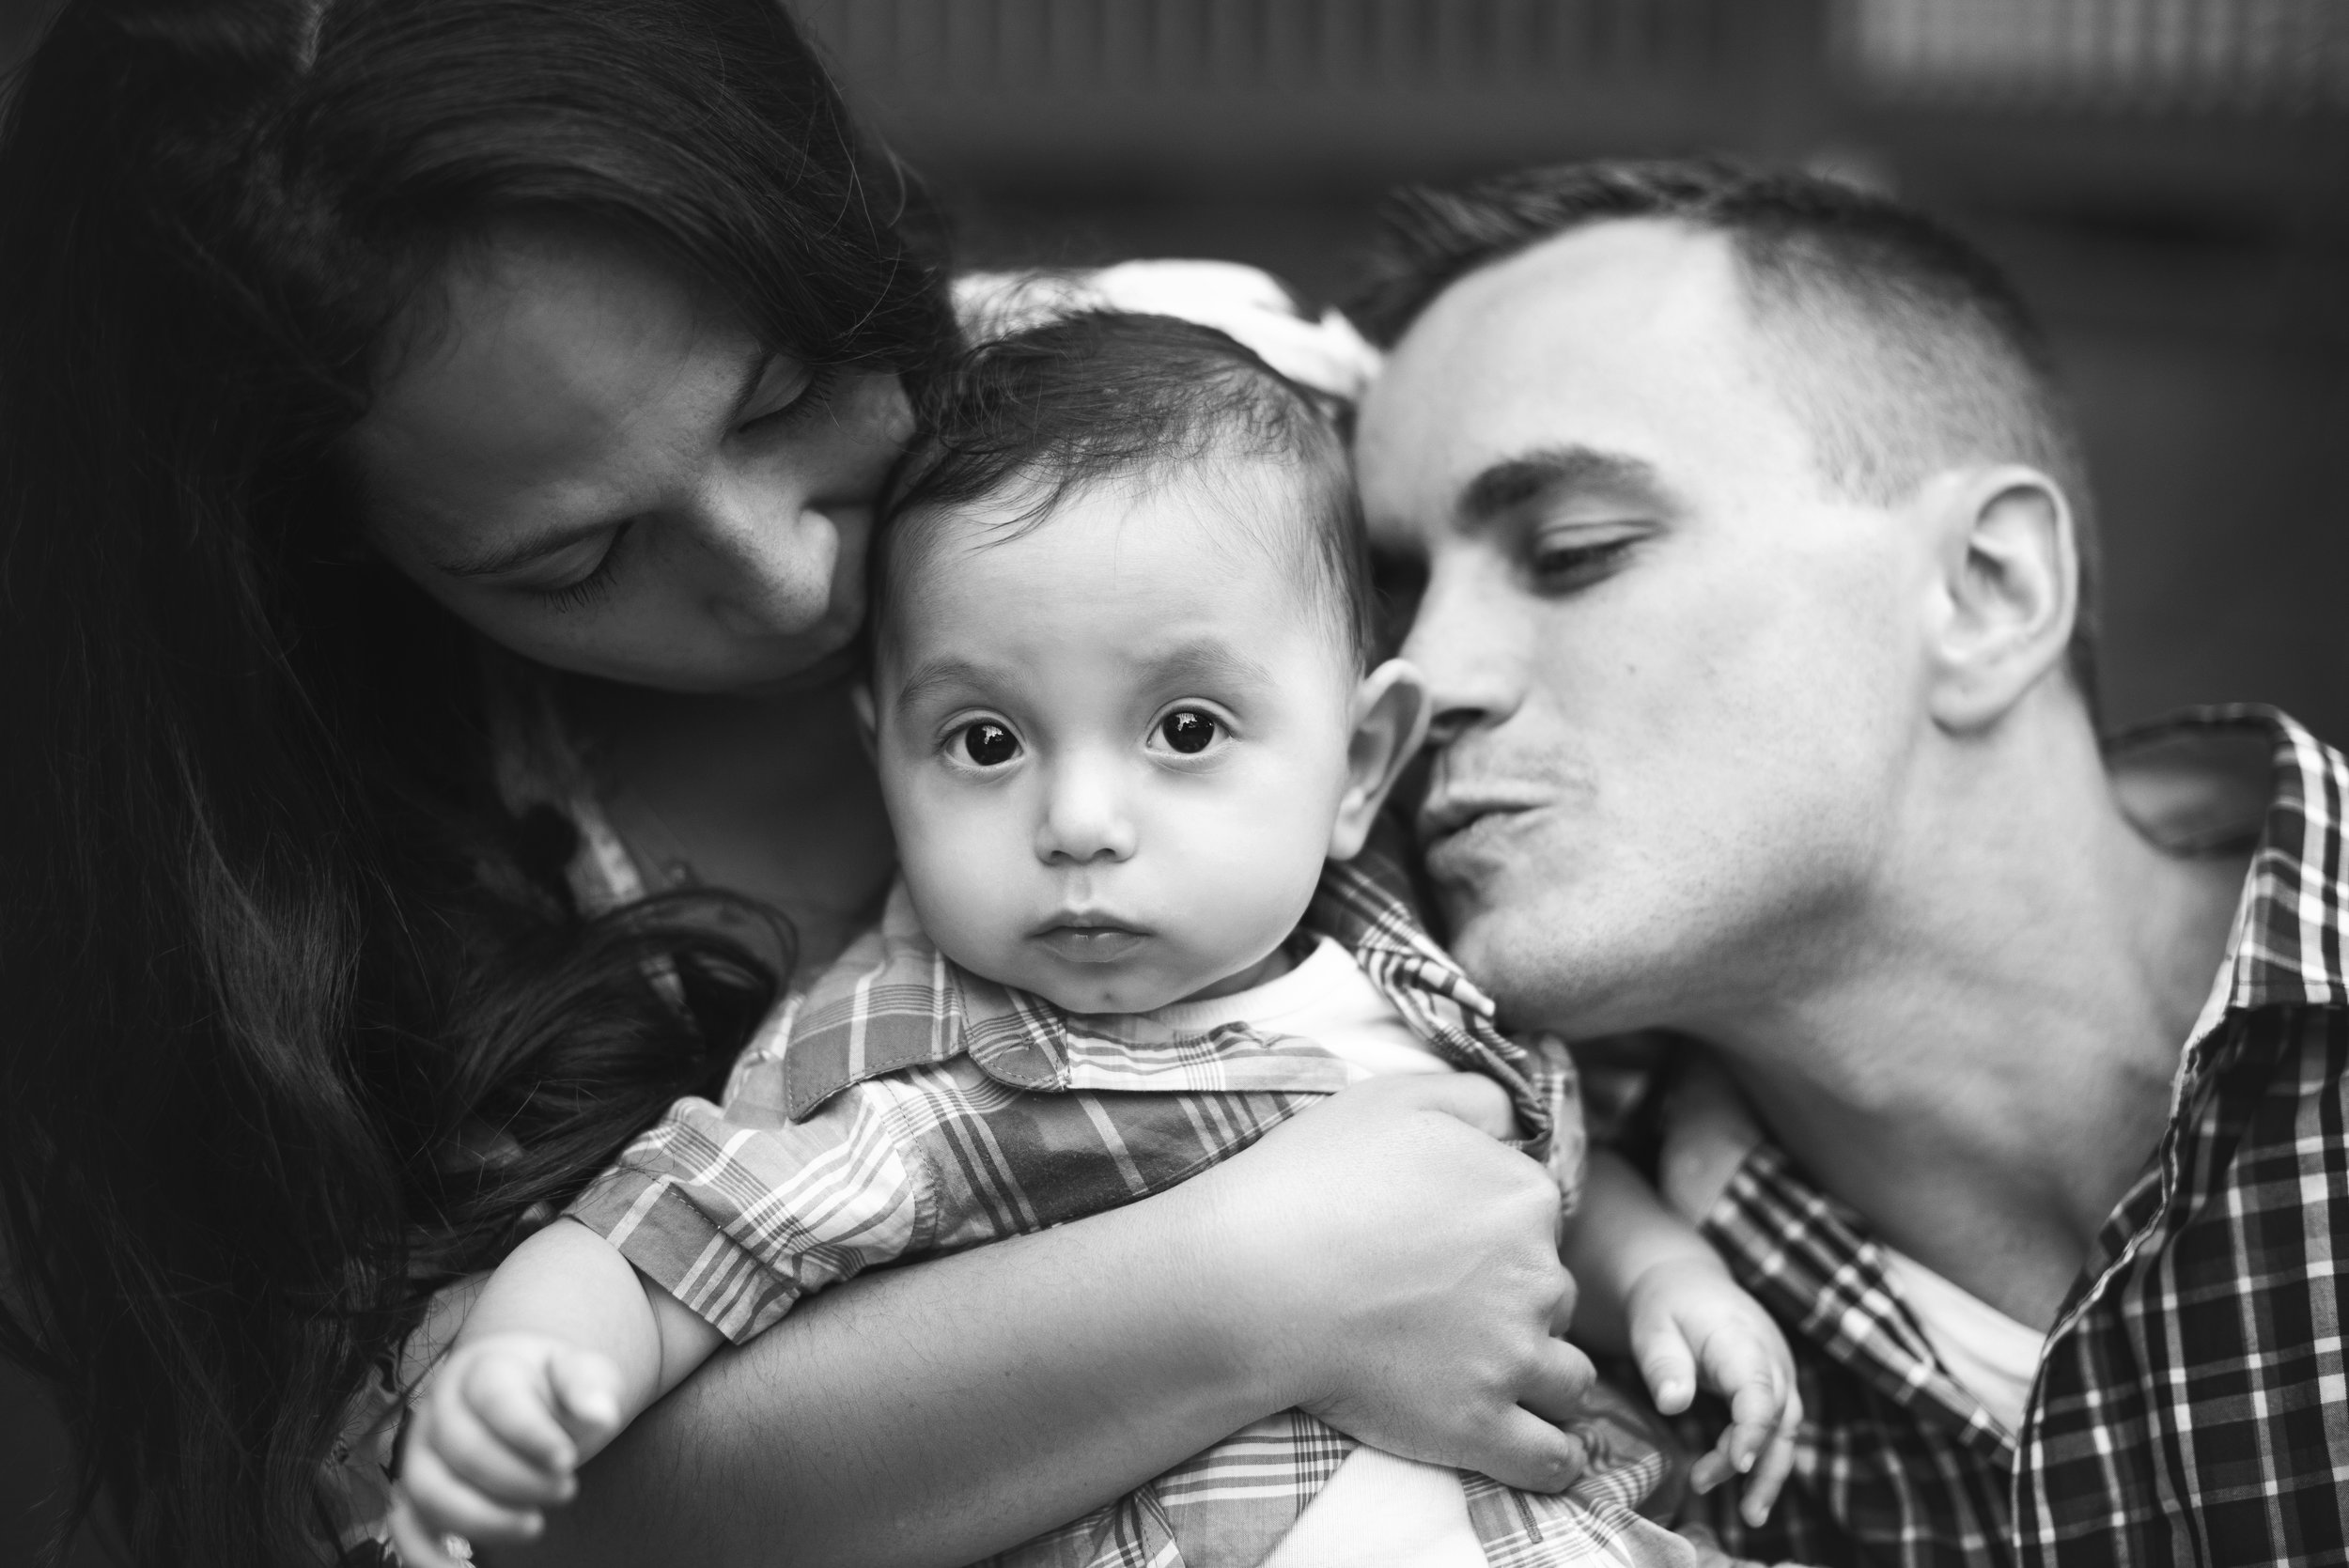 northwest indiana family photographer pumnea-42 bw.jpg